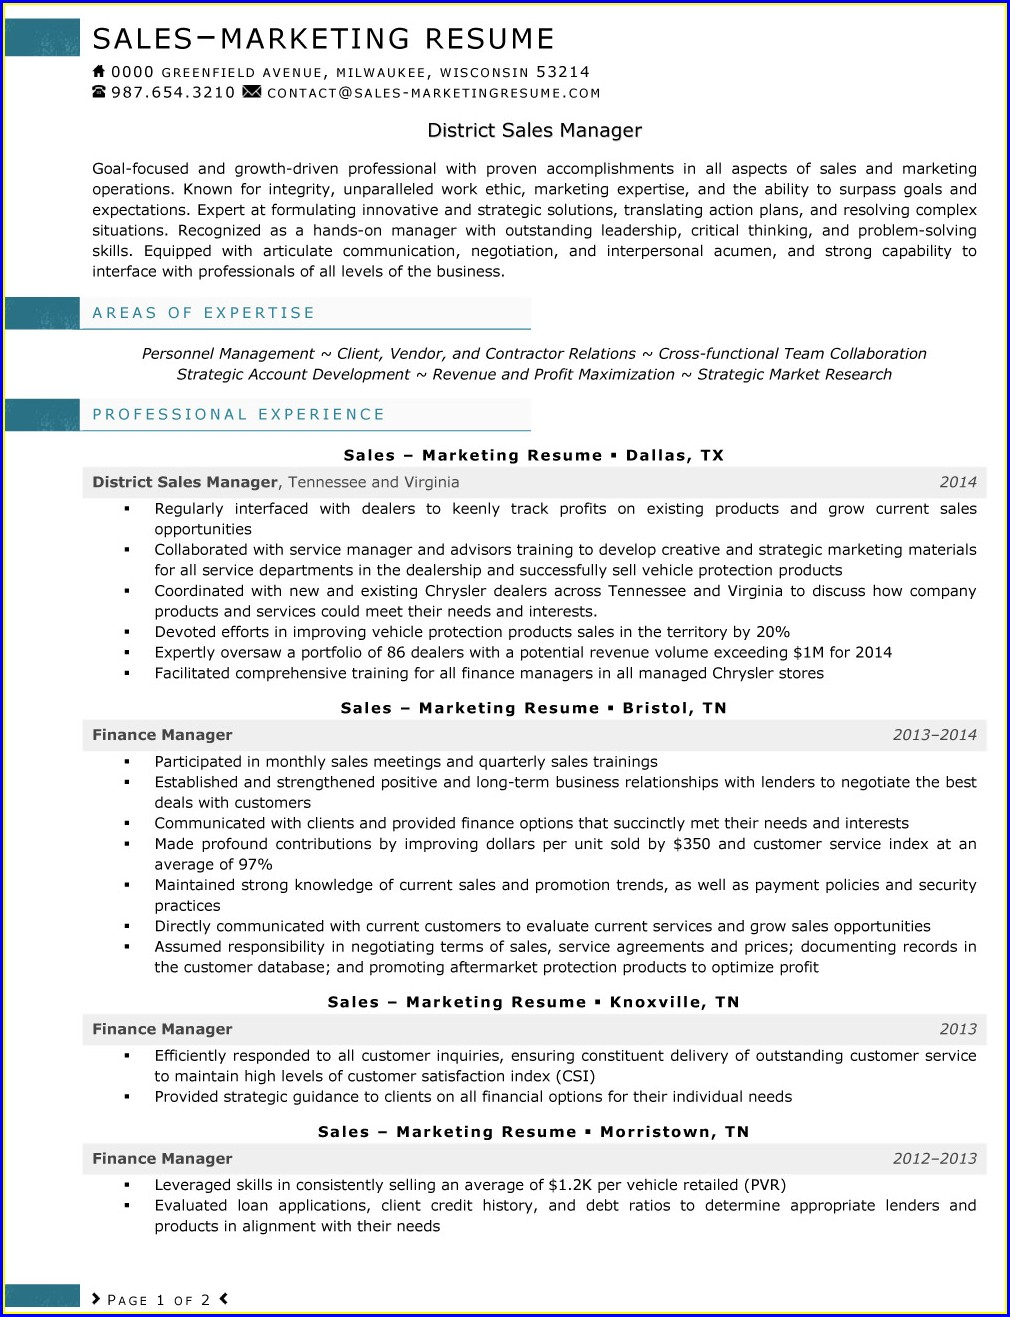 Sample Resume For Sales And Marketing Manager